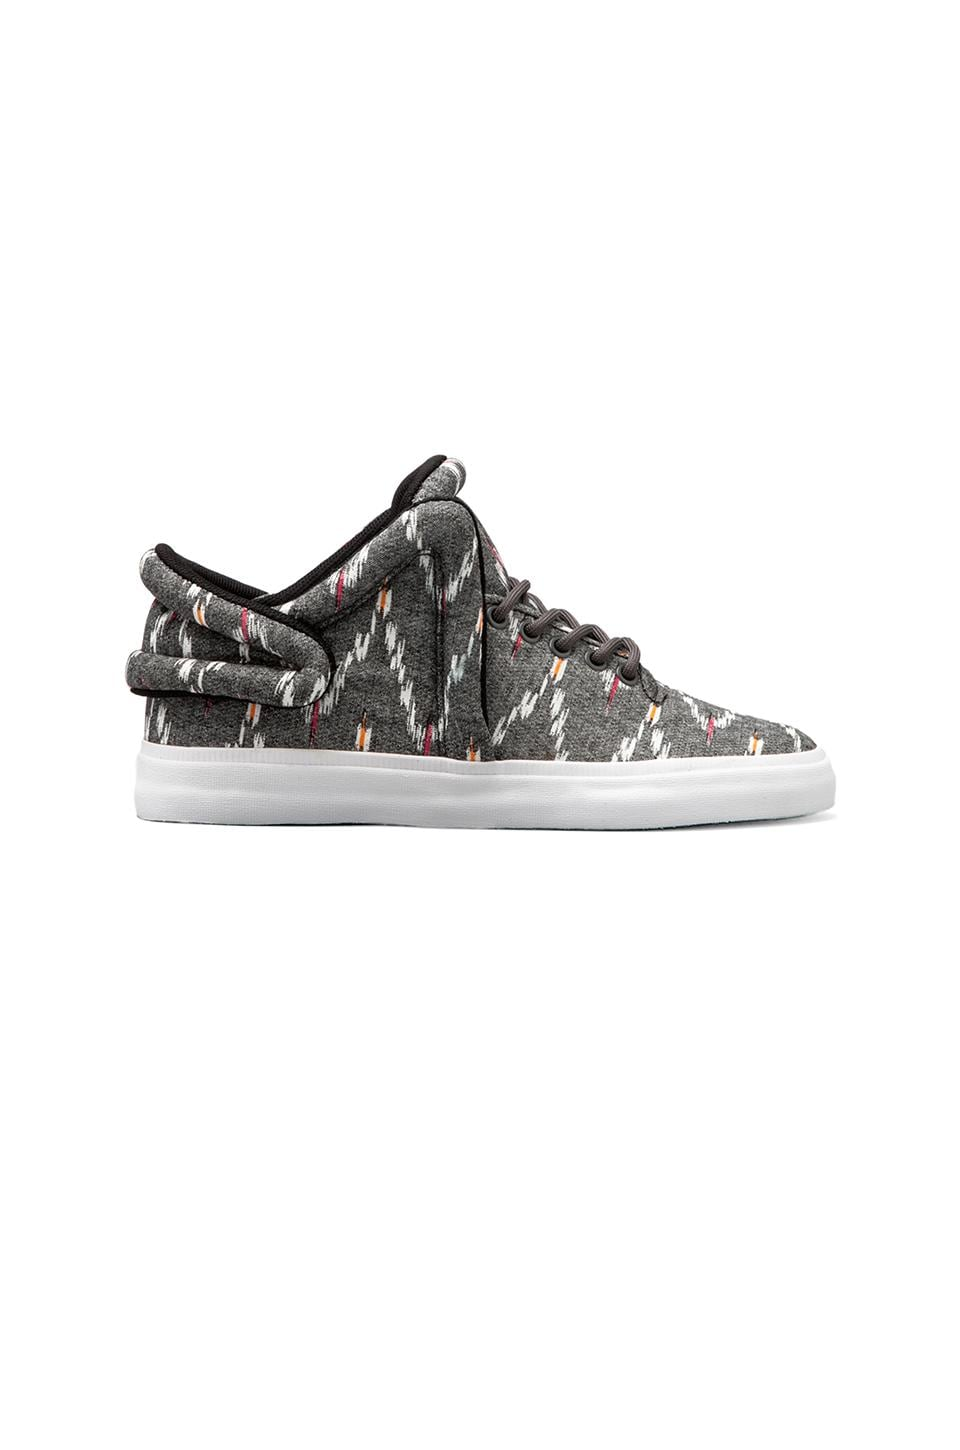 Supra Falcon in Grey/Print